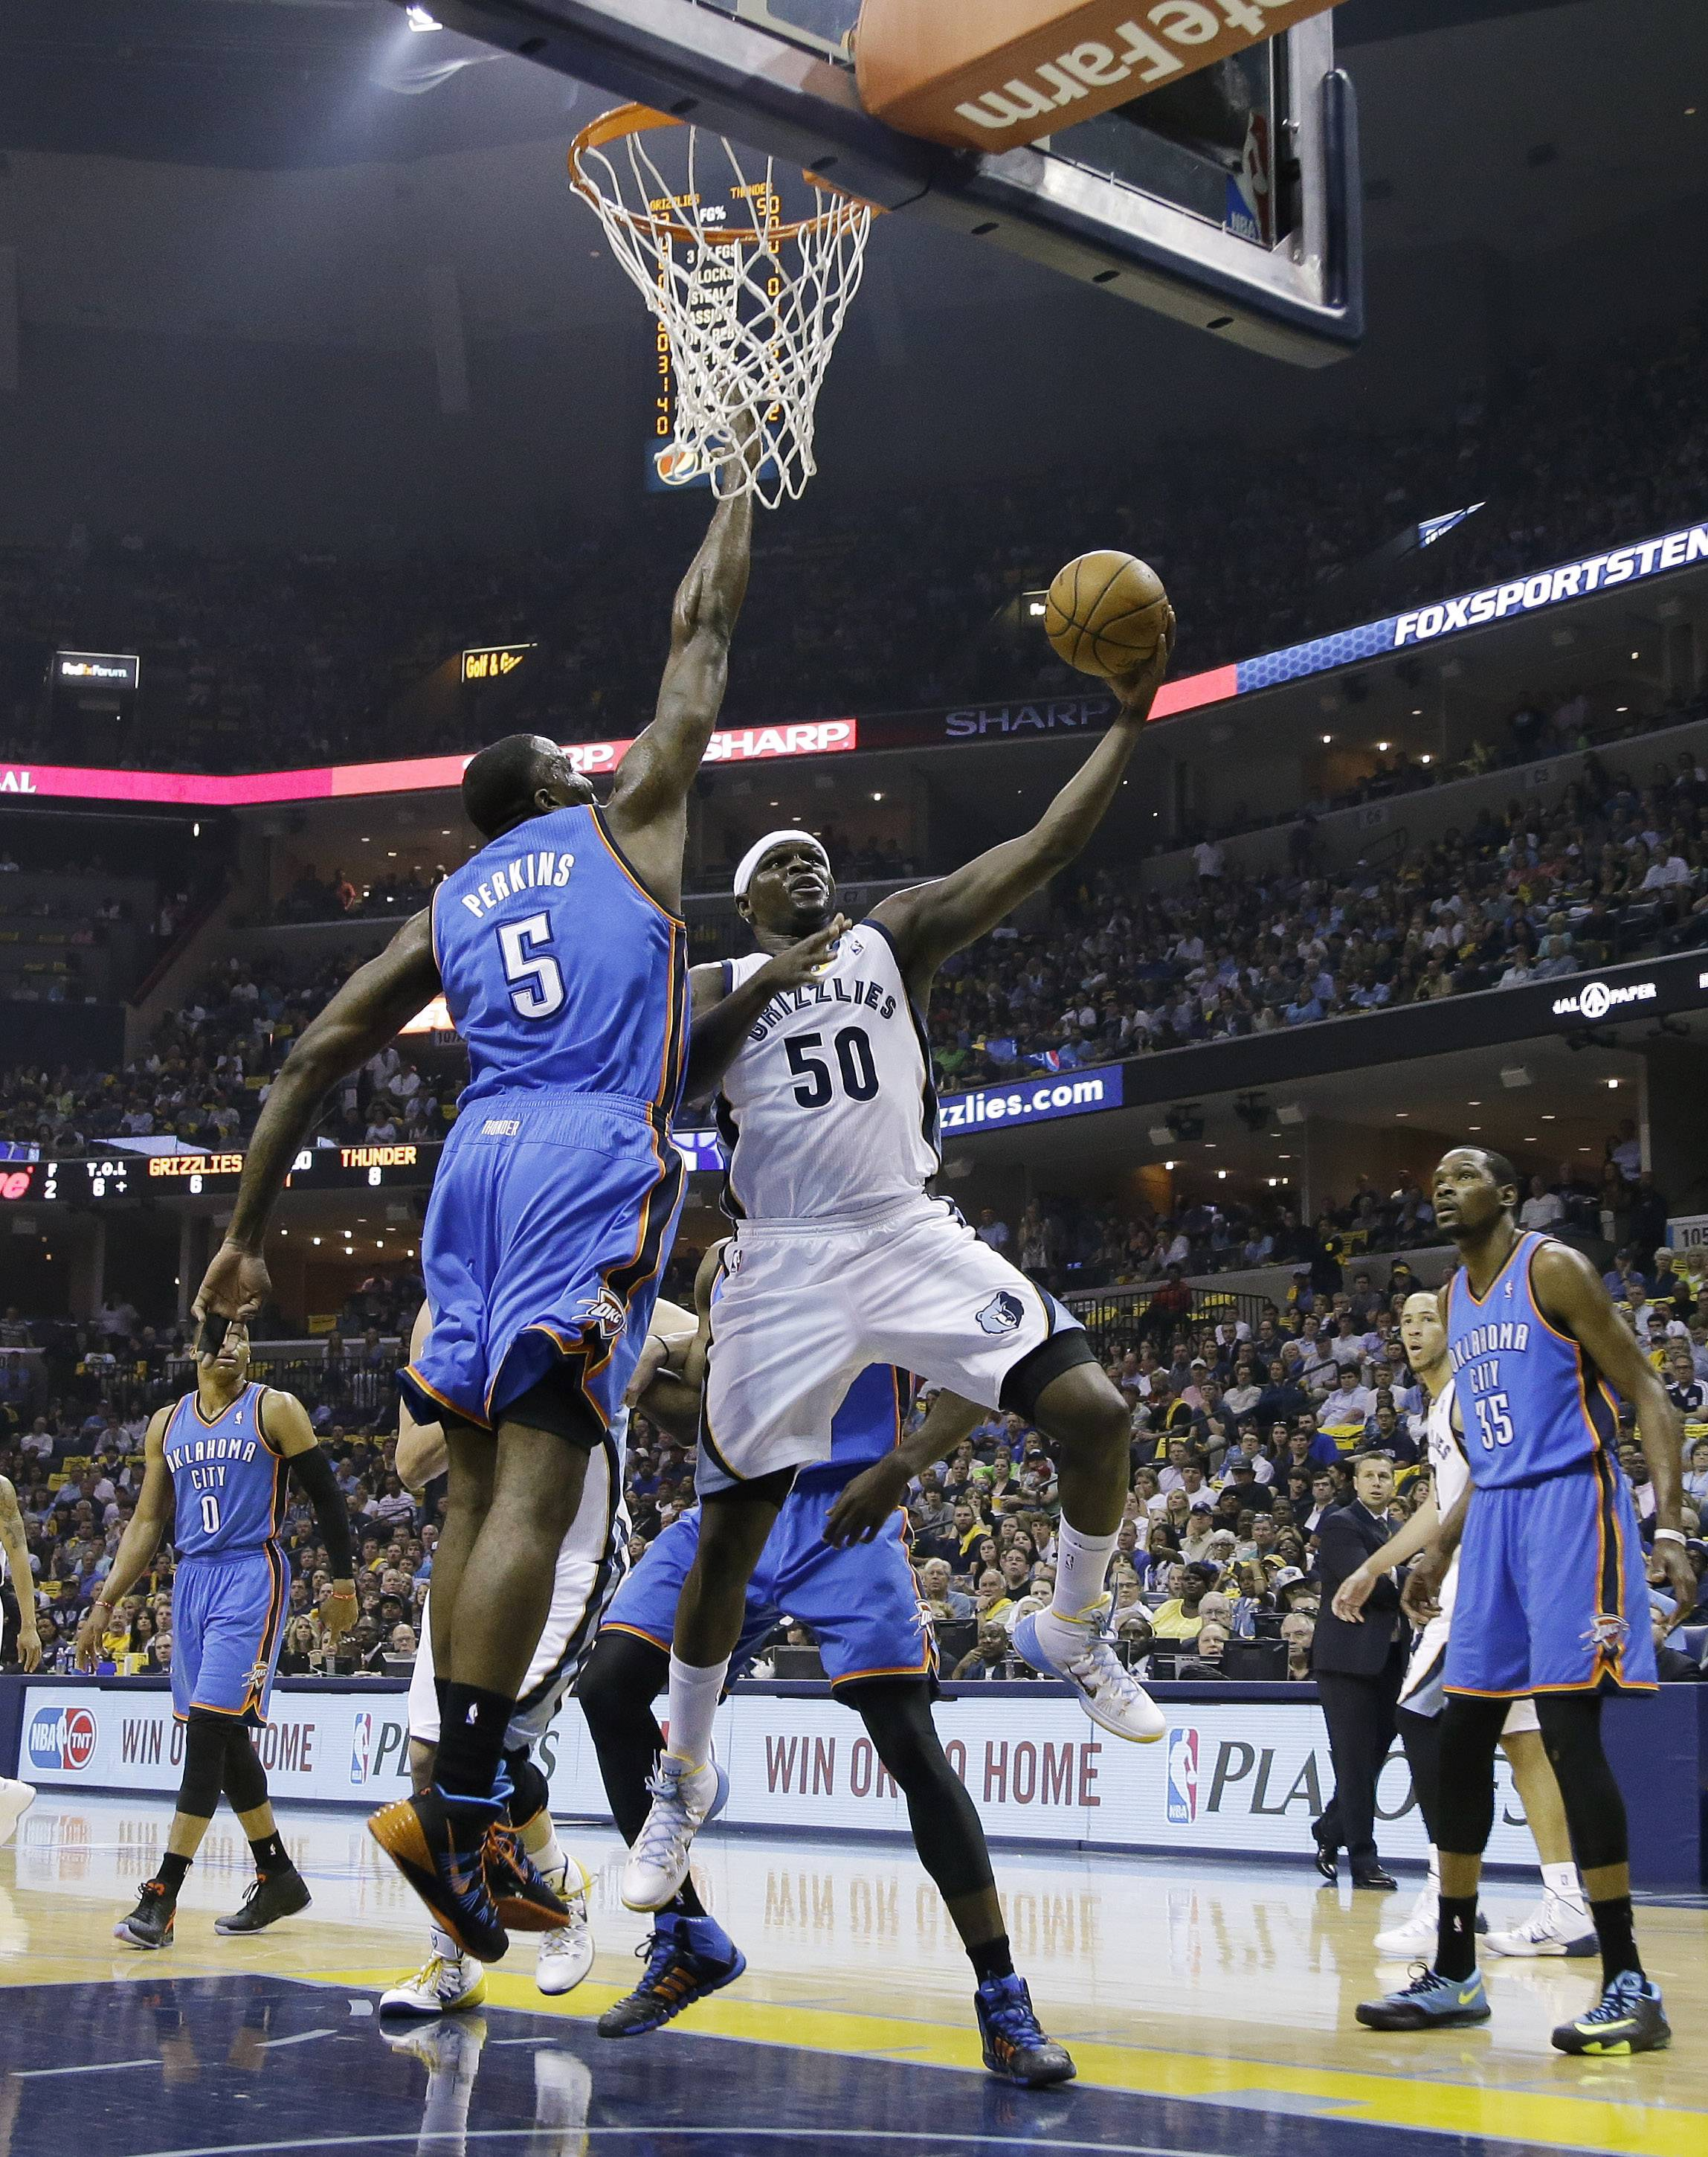 Memphis Grizzlies forward Zach Randolph (50) scores against Oklahoma City Thunder center Kendrick Perkins (5) in the first half of Game 3 of an opening-round NBA basketball playoff series Thursday, April 24, 2014, in Memphis, Tenn. (AP Photo/Mark Humphrey)